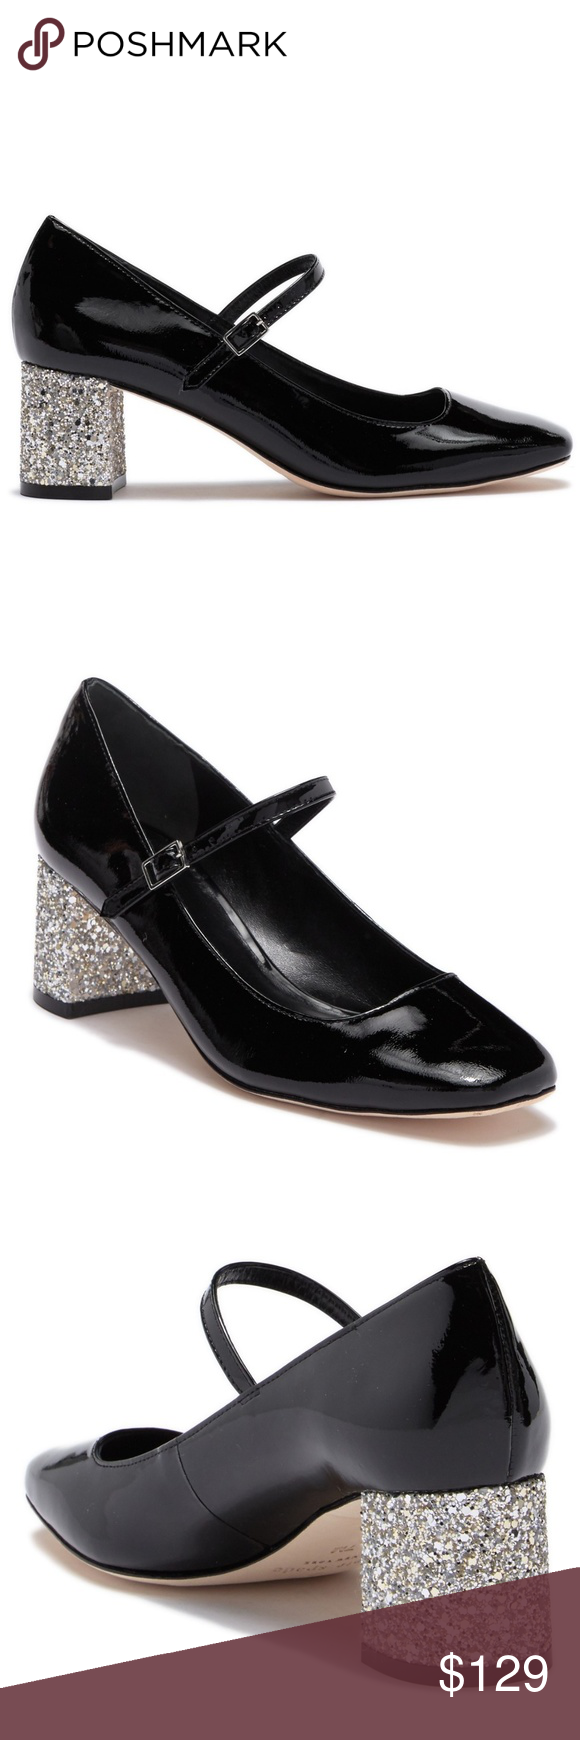 58a86d3c4138 Kate Spade Kornelia Black Patent Glitter Heel Pump Kate Spade New York  Kornelia New In Box